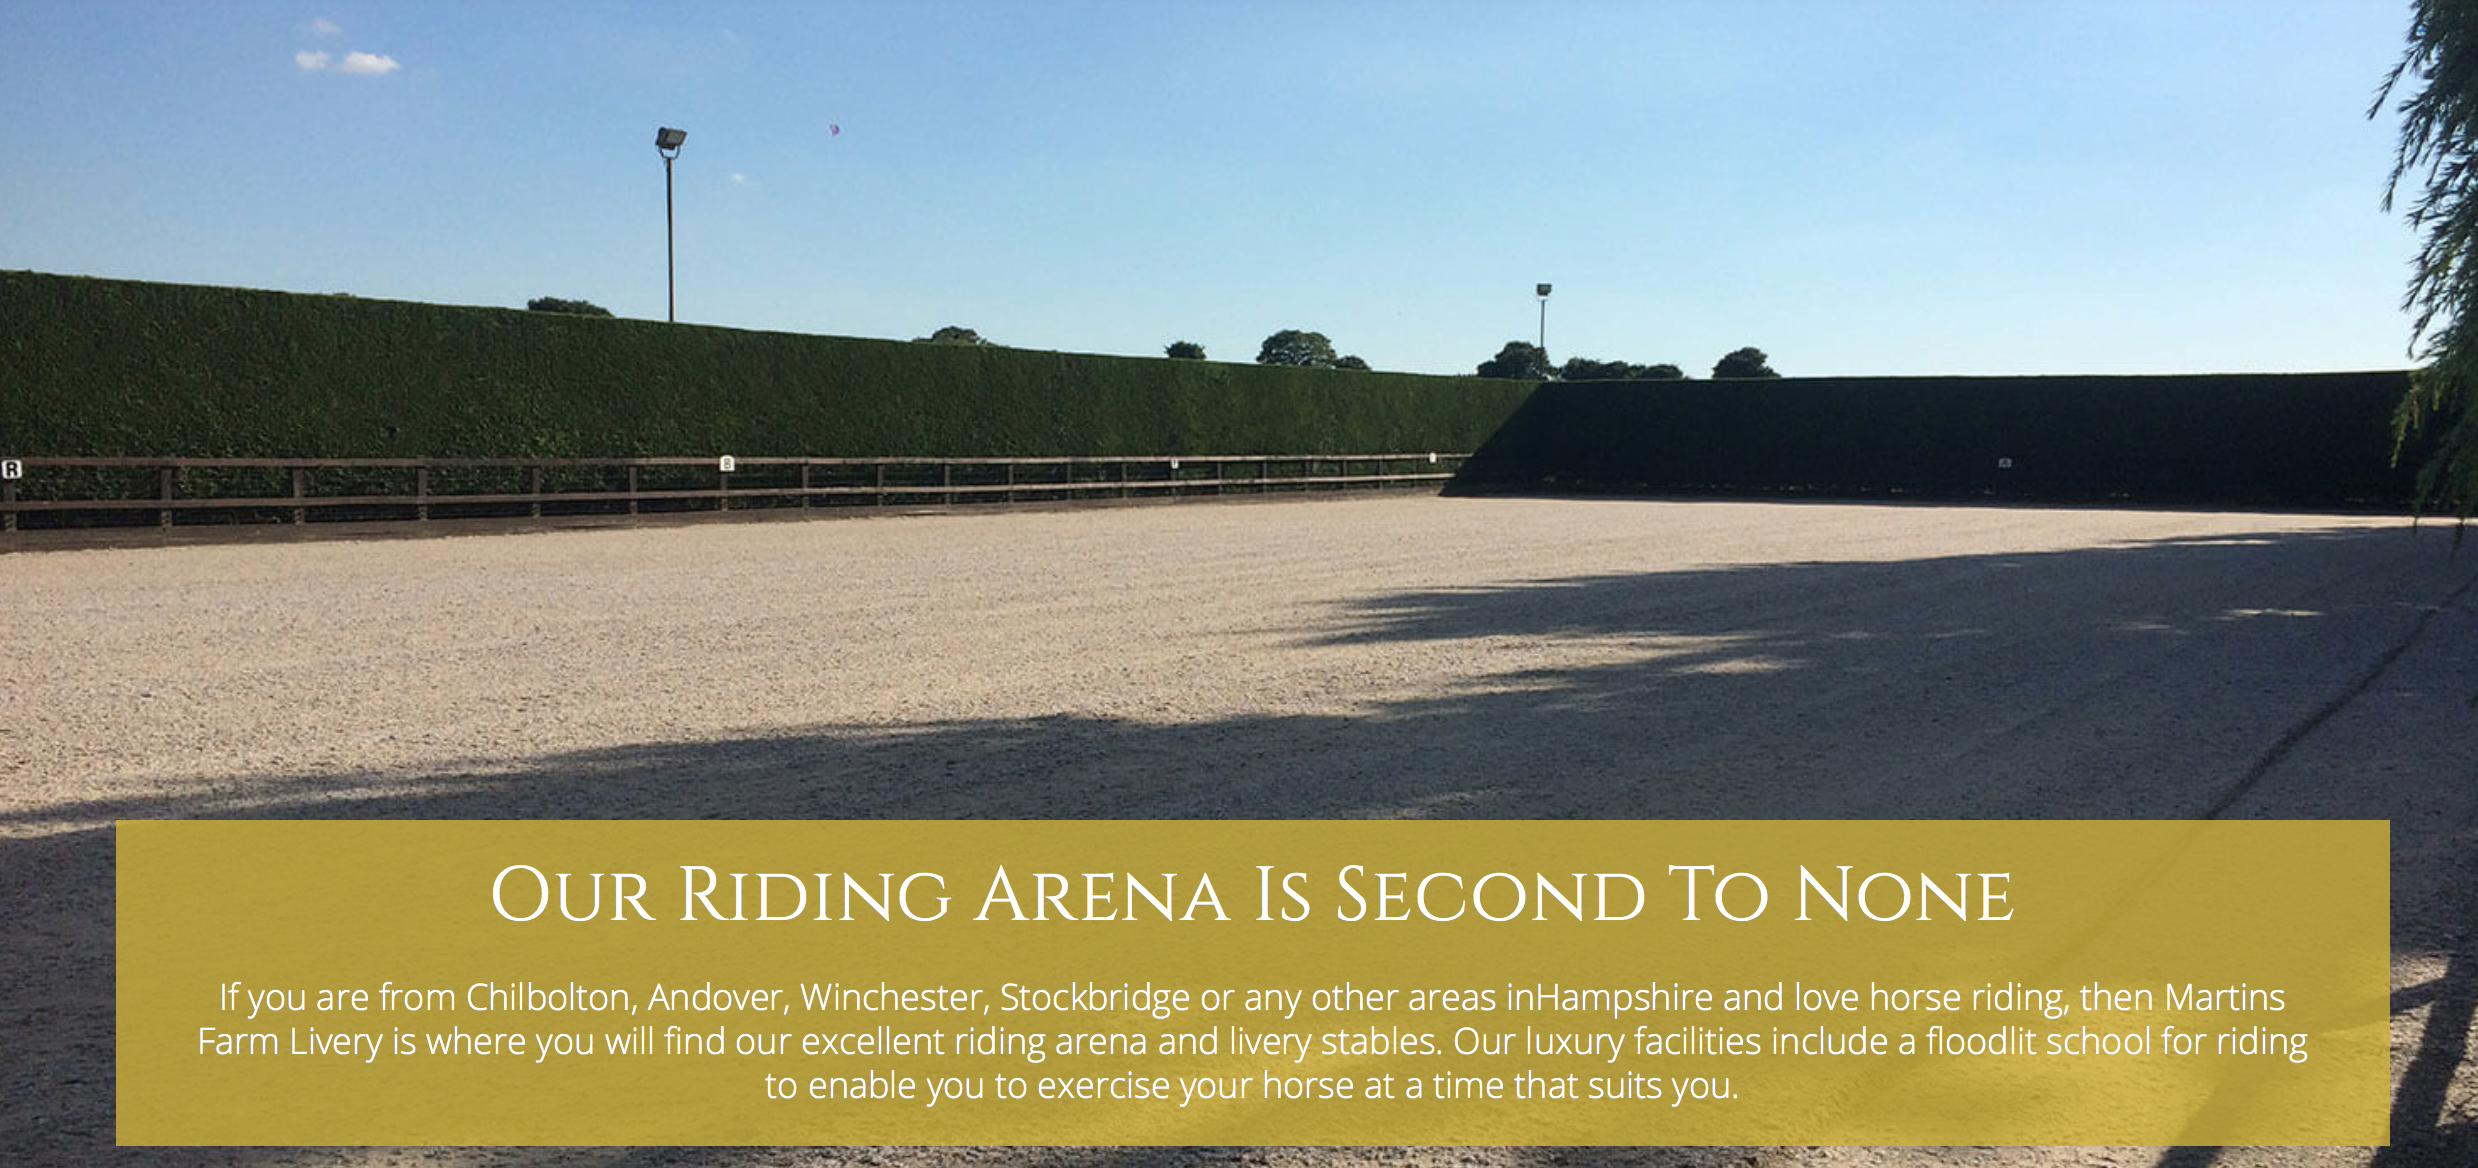 Hire a local arena - Travel fees will be not be charged at this venue (Martin's Farm Livery) in Chilbolton - click on the image for more details.